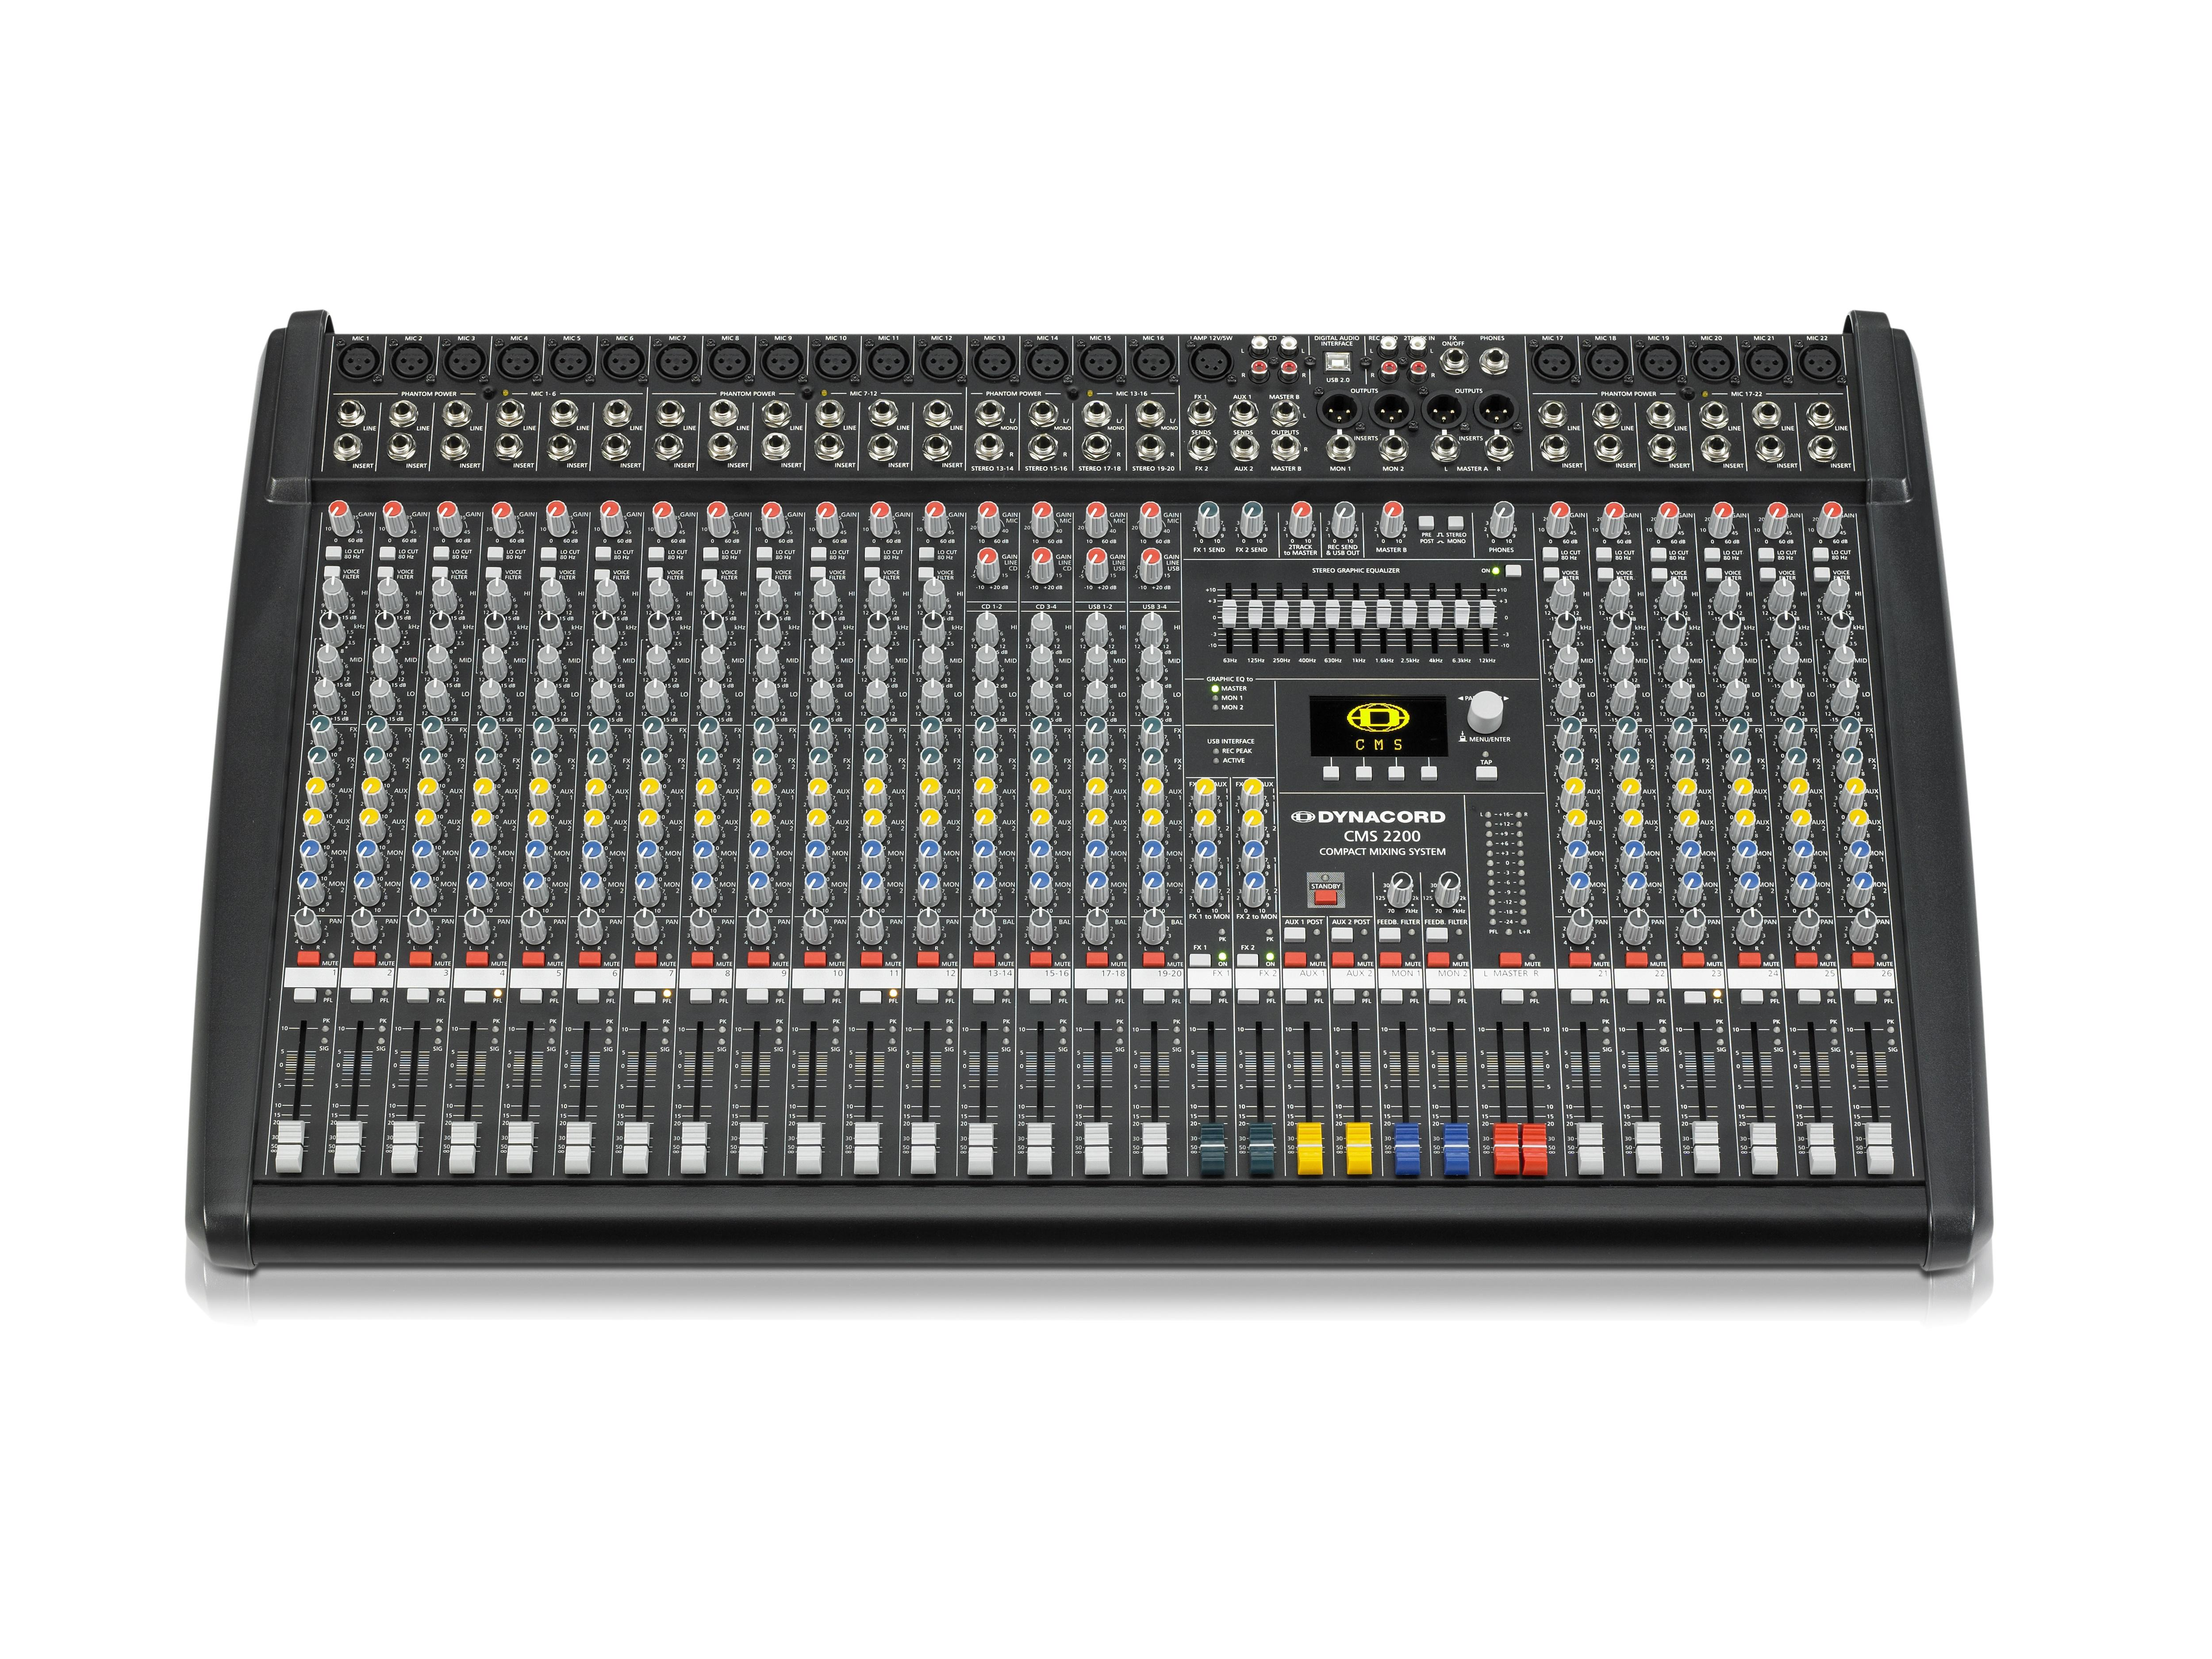 DCCMS22003MIG 18 Mic/Line w 4 Mic/Stereo Line Channels/6 x AUX/Dual 24 bit Stereo Effects/USB-Audio Interface by Dynacord